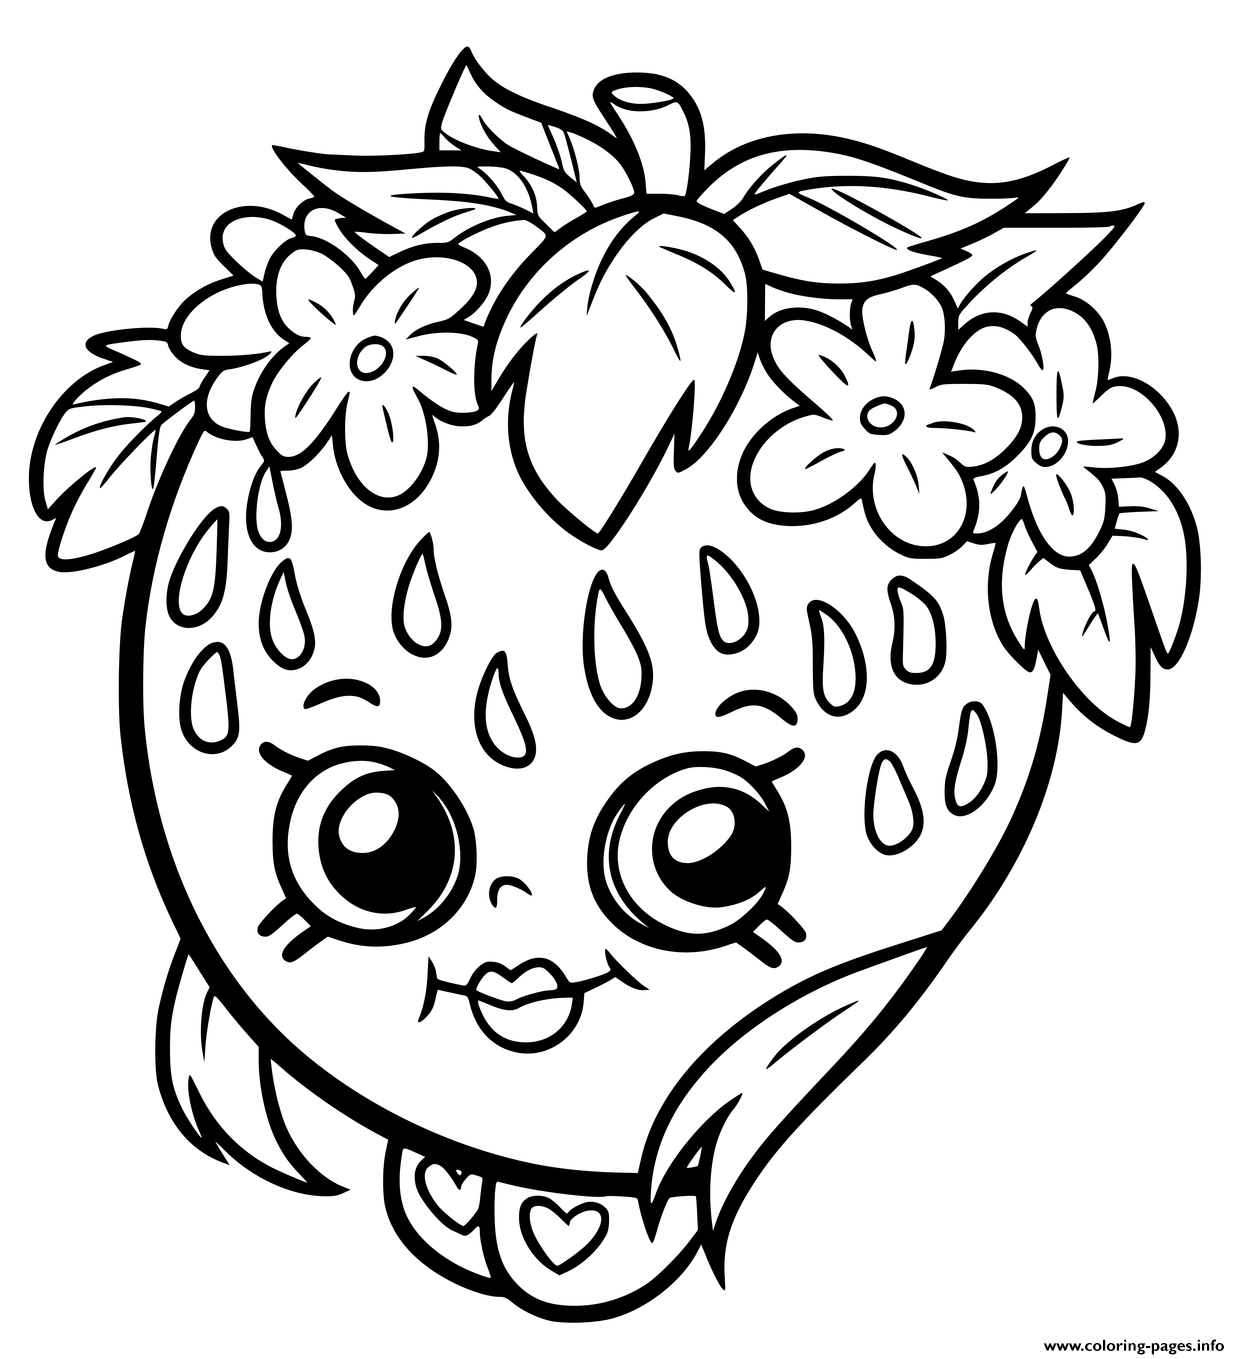 Shopkins coloring pages season 5 shopkins awesome printable coloring - Print Shopkins Strawberry Smile Coloring Pages